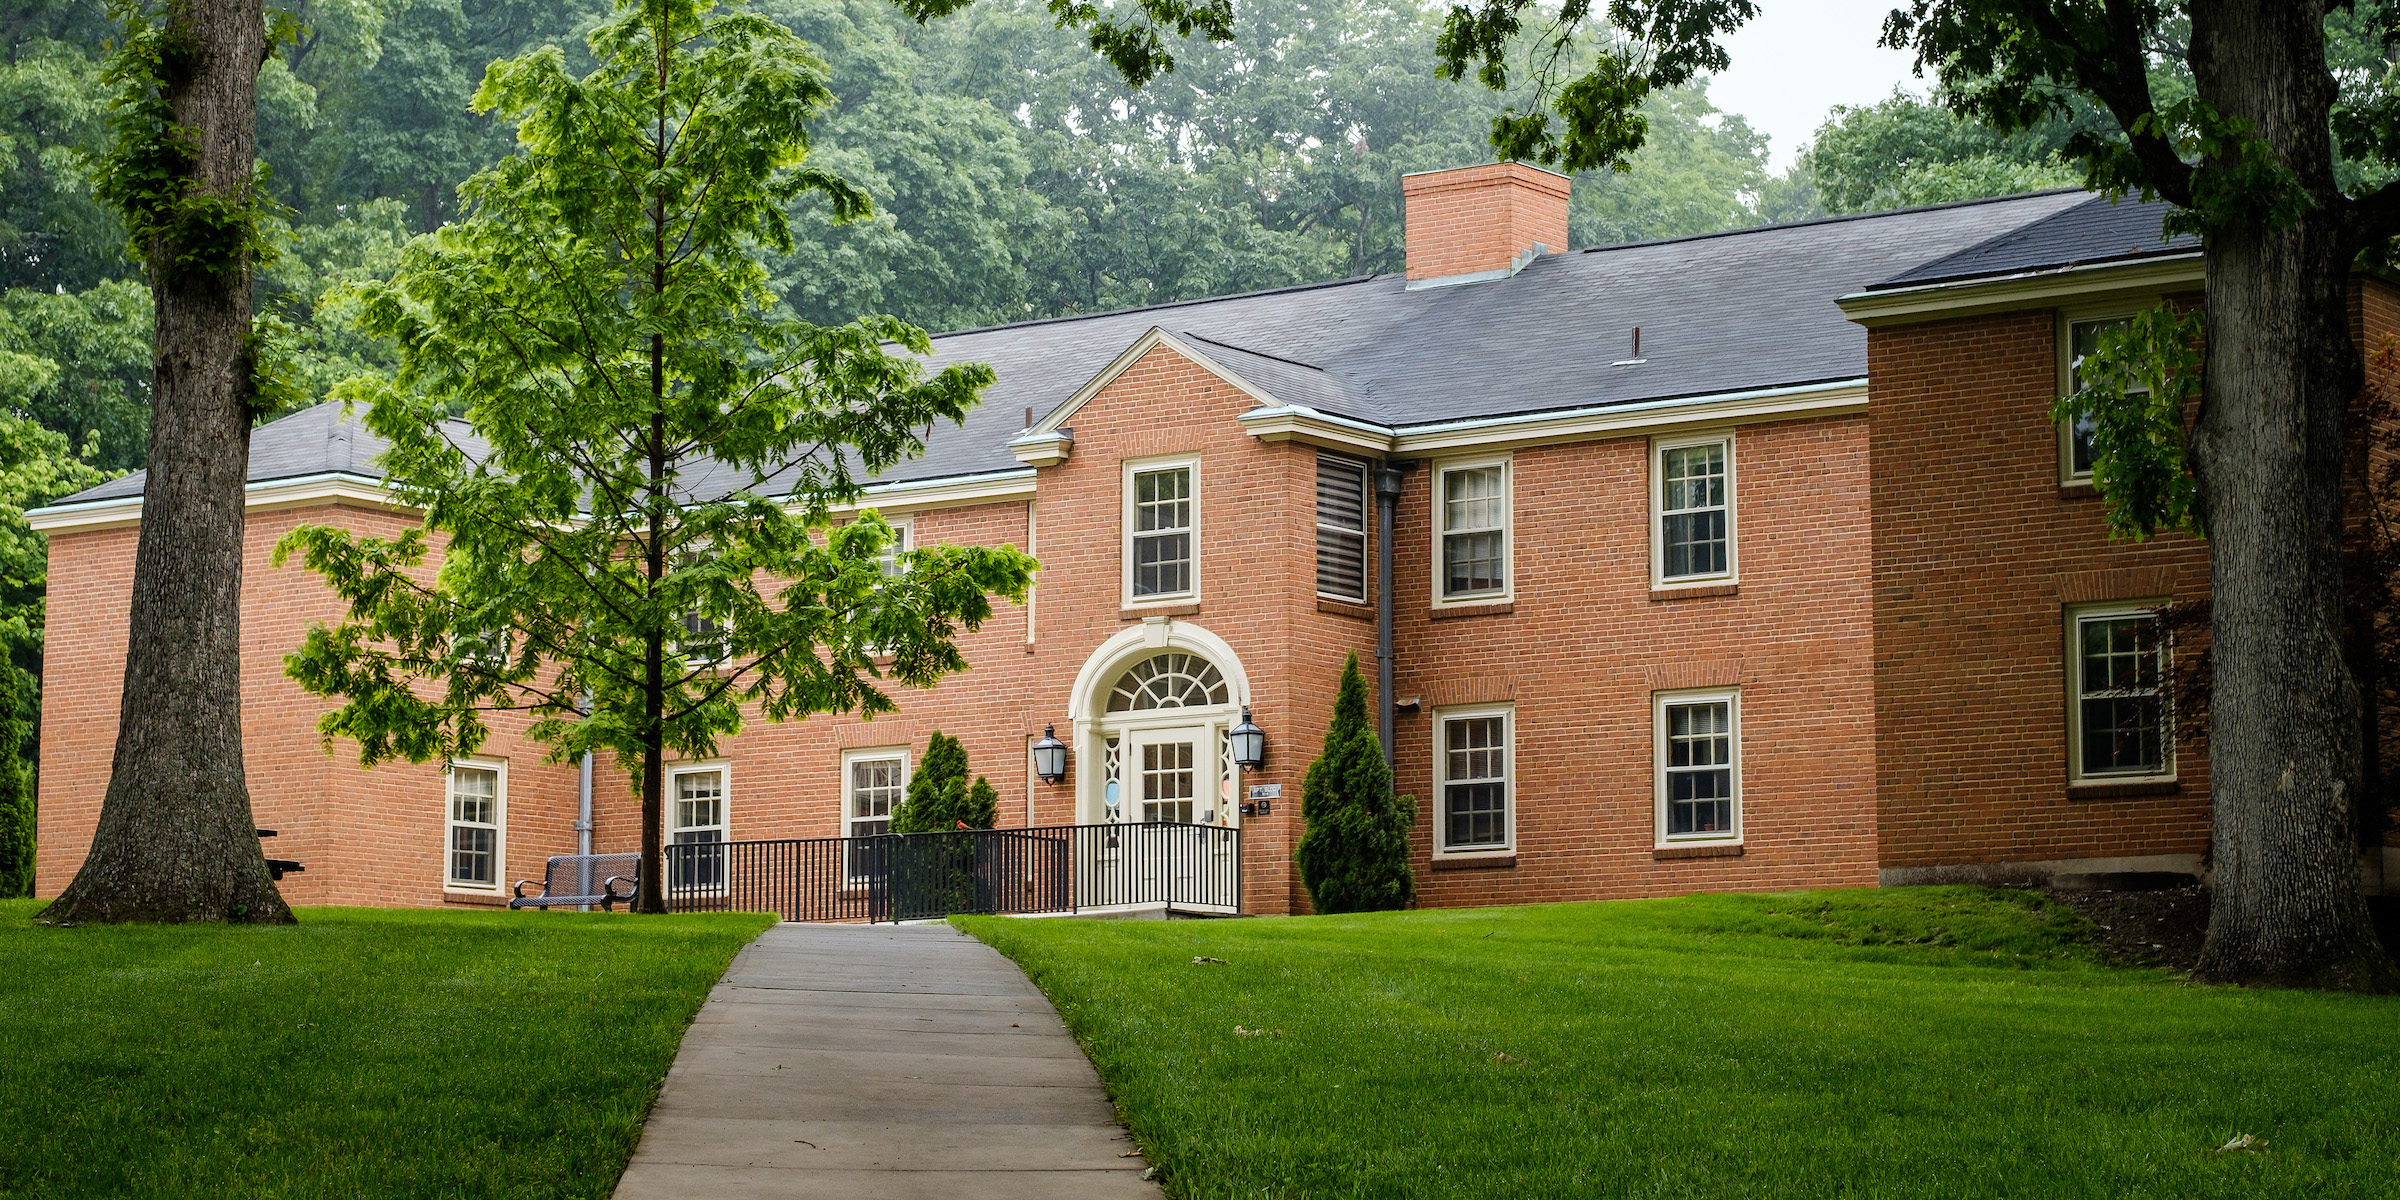 Exterior photo of North Campus Apartment Building